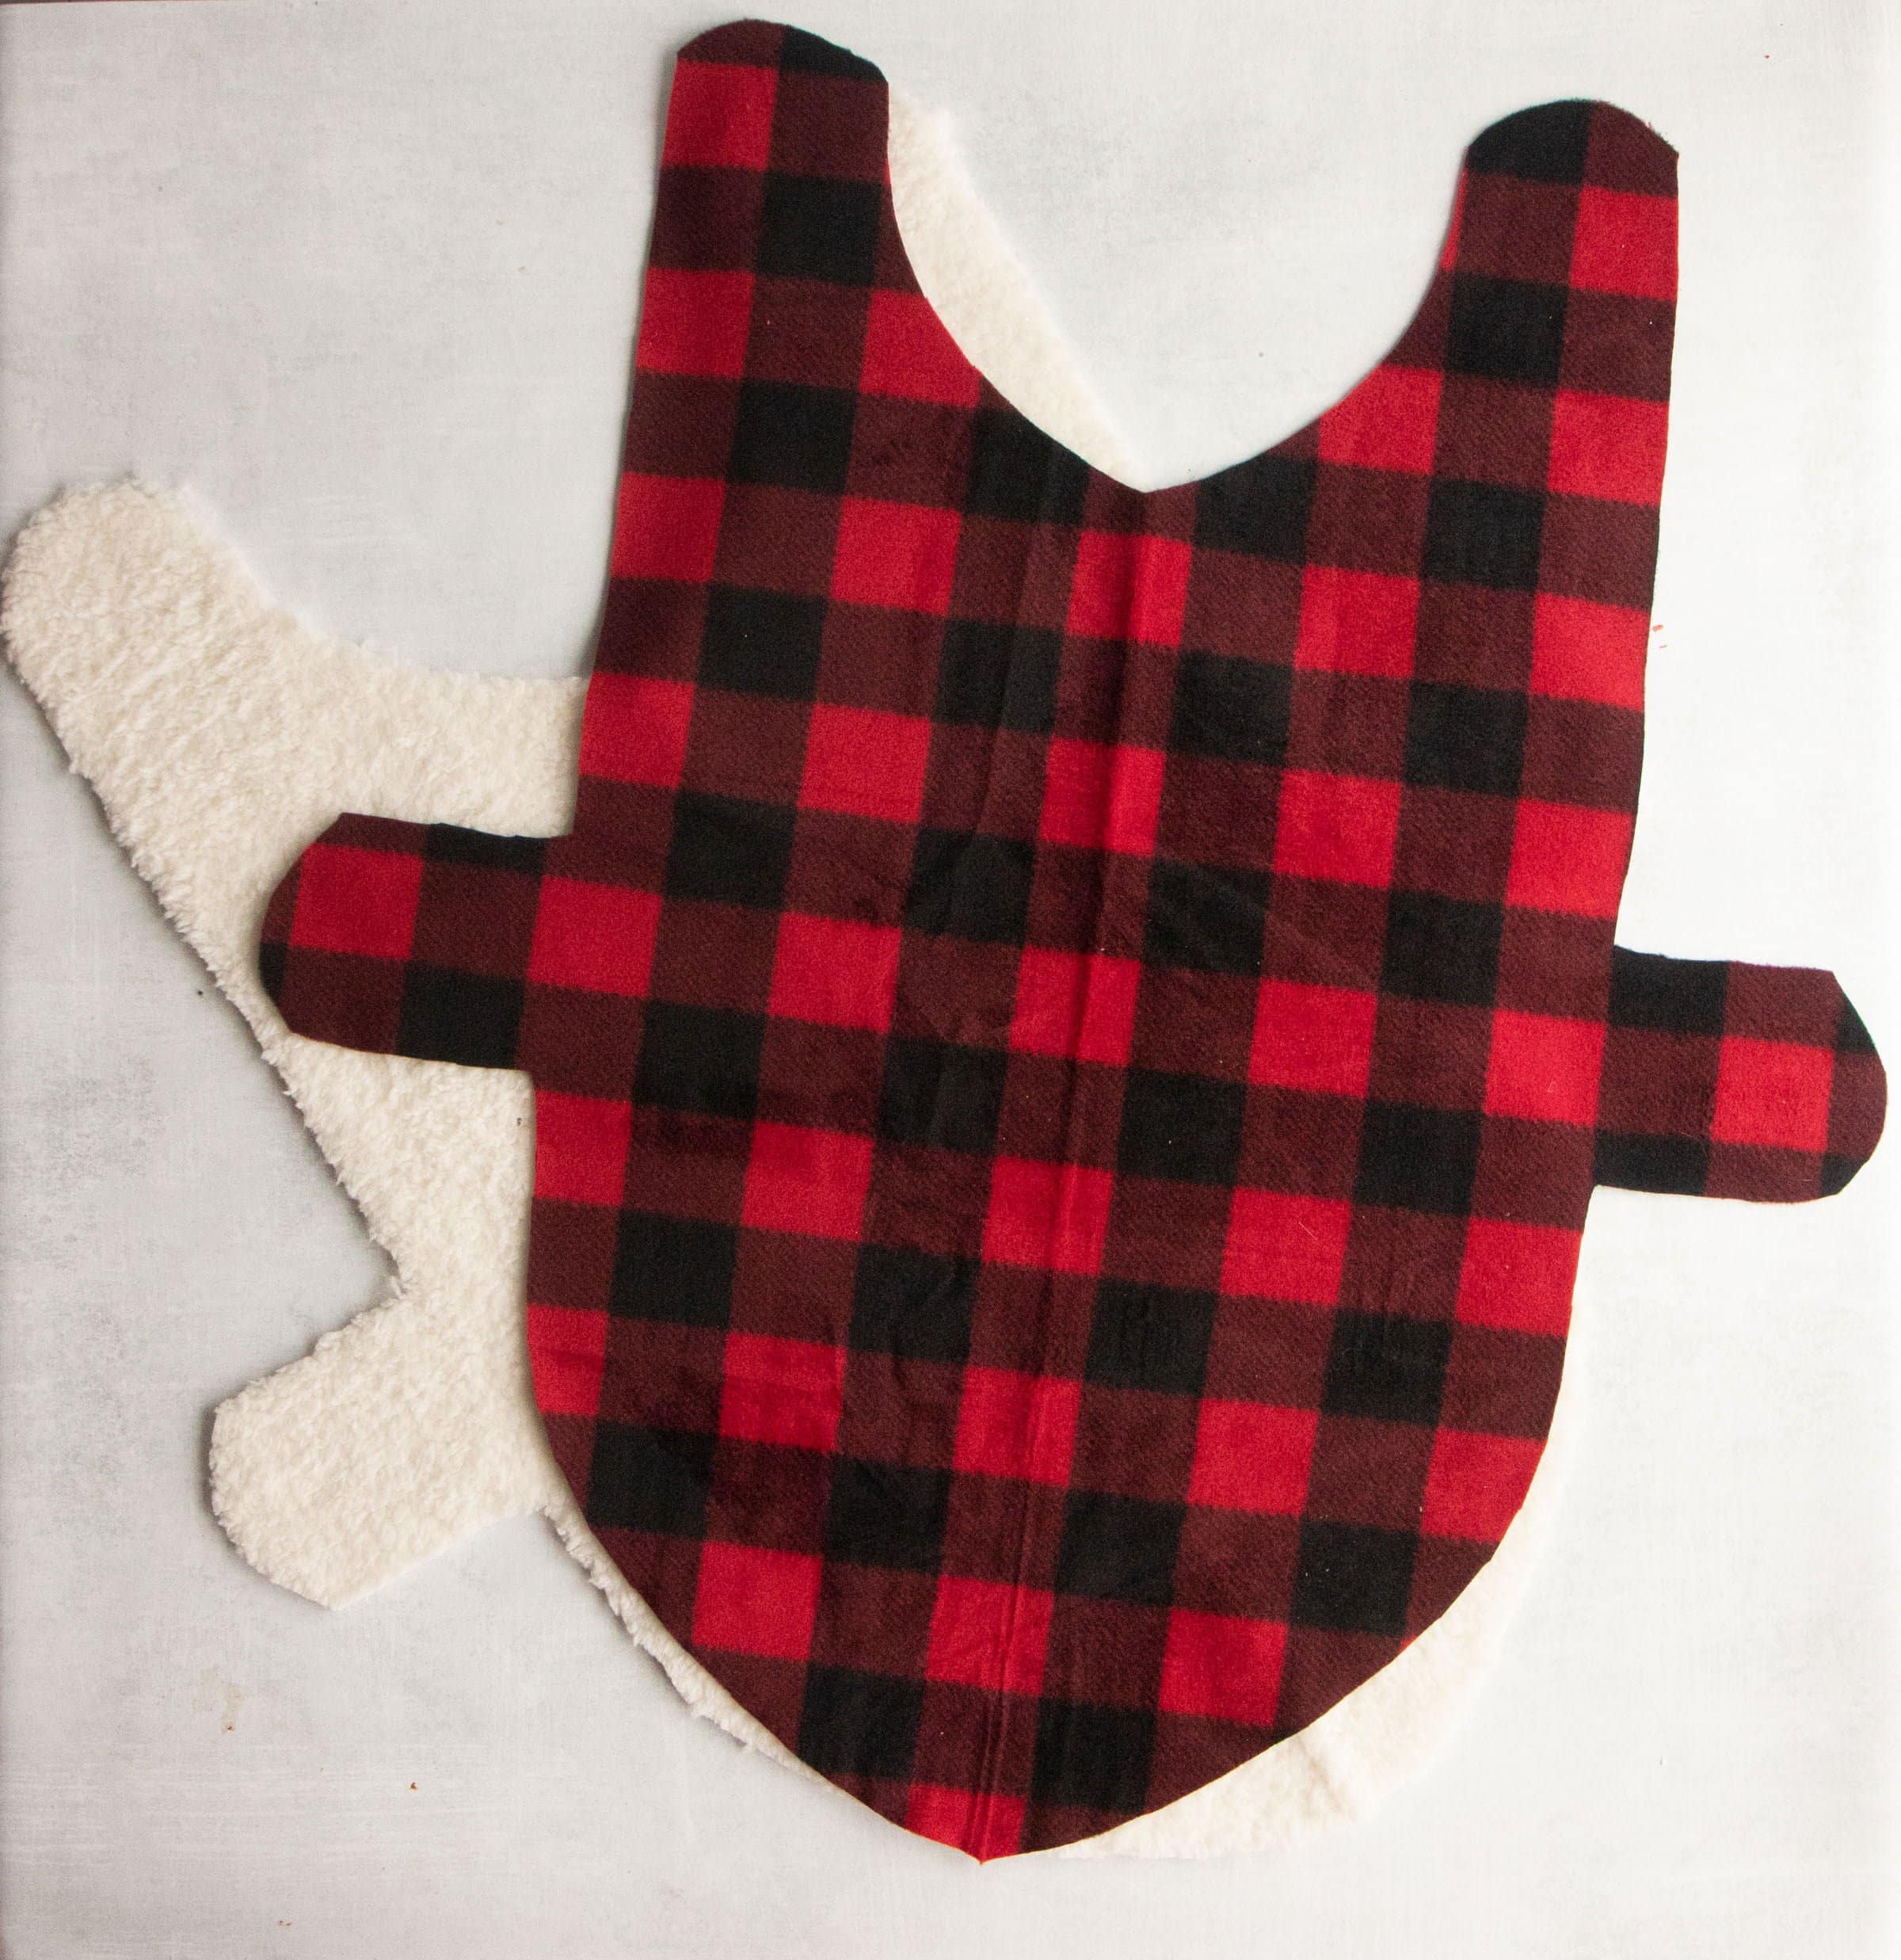 Fleece and faux fur fabric cut out for a dog coat